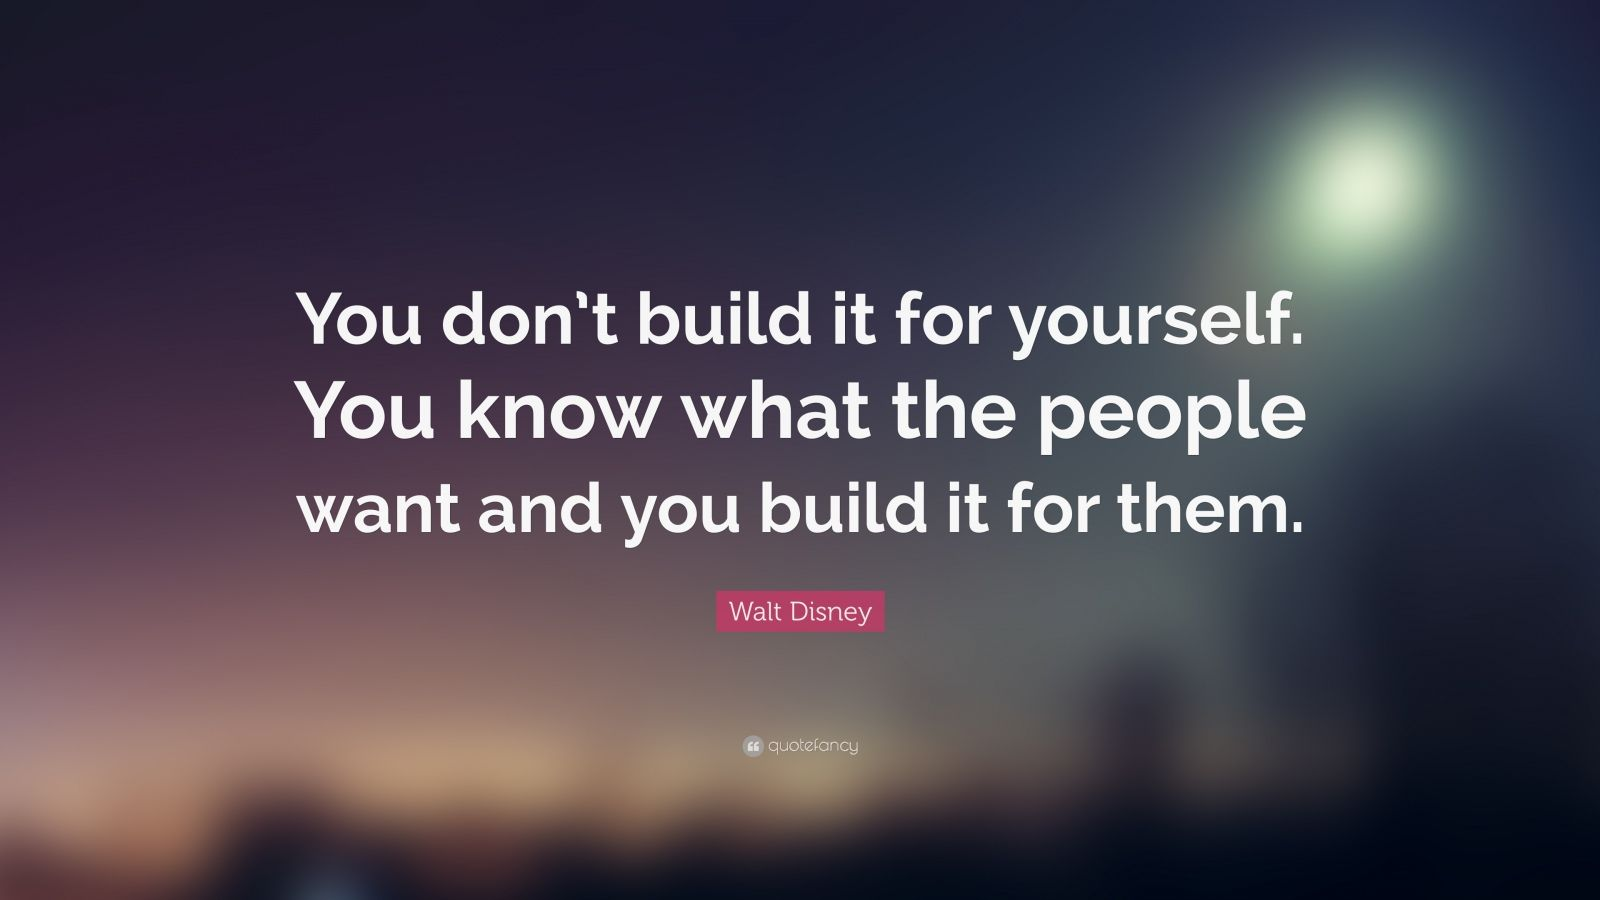 """Walt Disney Quote: """"You don't build it for yourself. You know what the people want and you build it for them."""""""